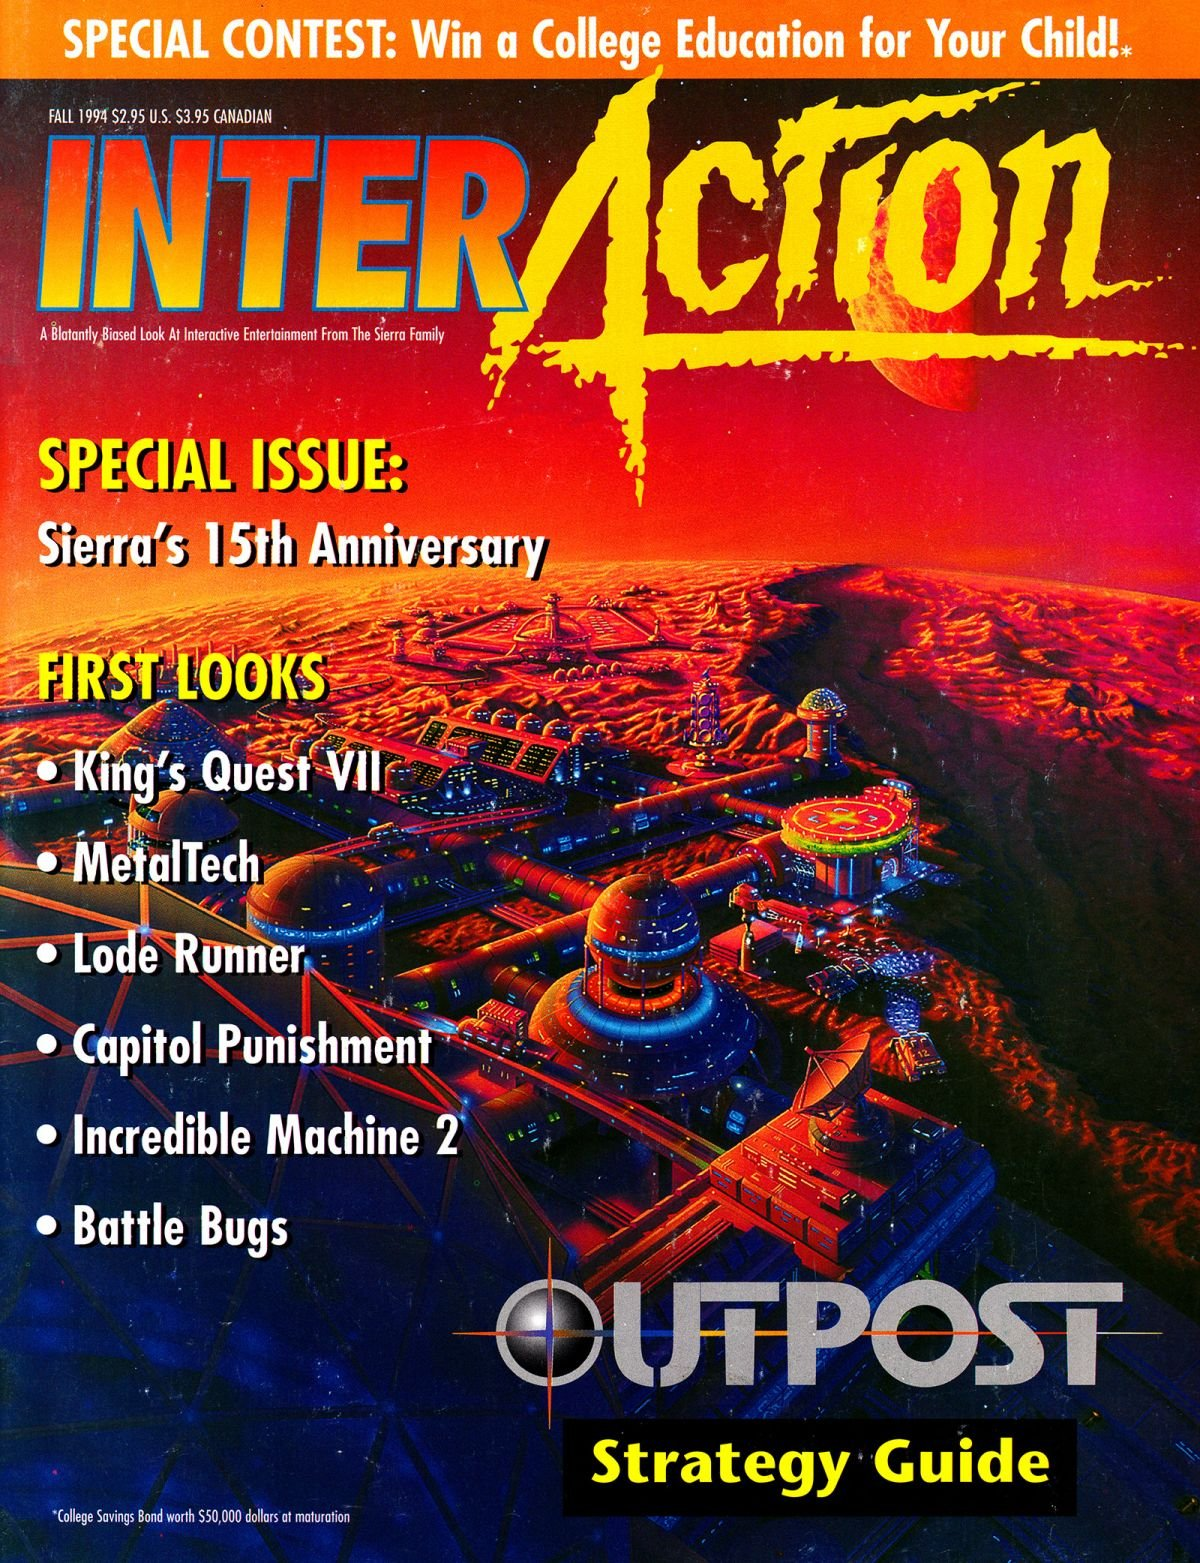 InterAction Issue 21 (Volume 7 Number 1) Fall 1994